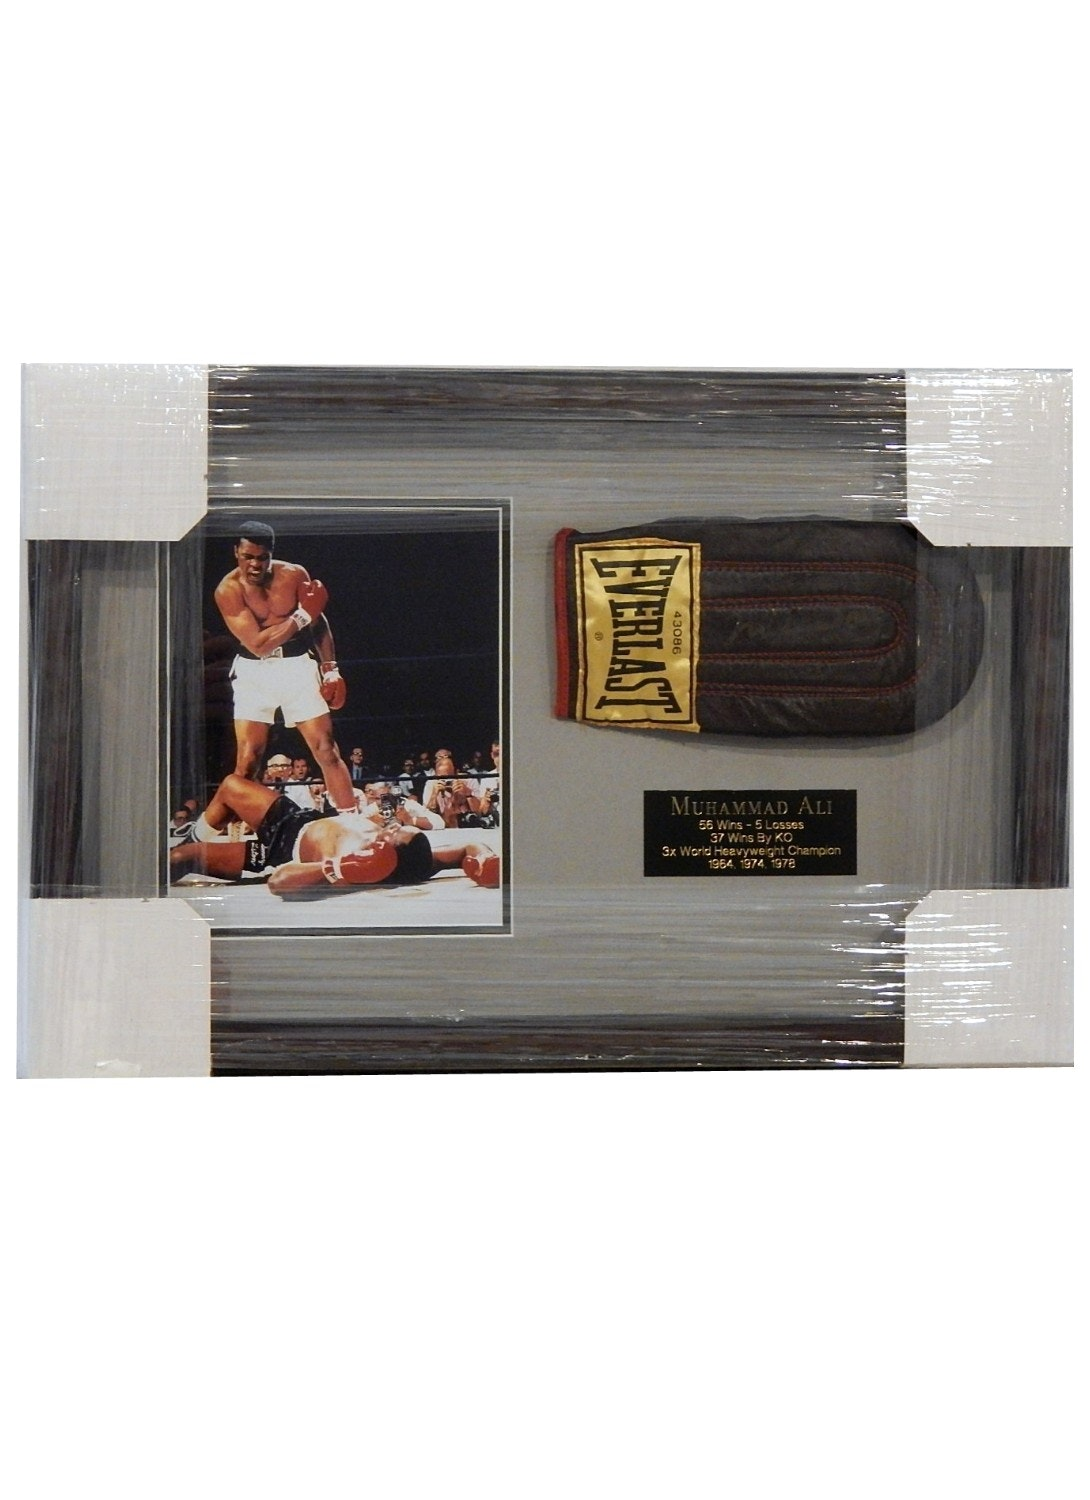 Muhammad Ali Framed Photograph and Signed Boxing Glove